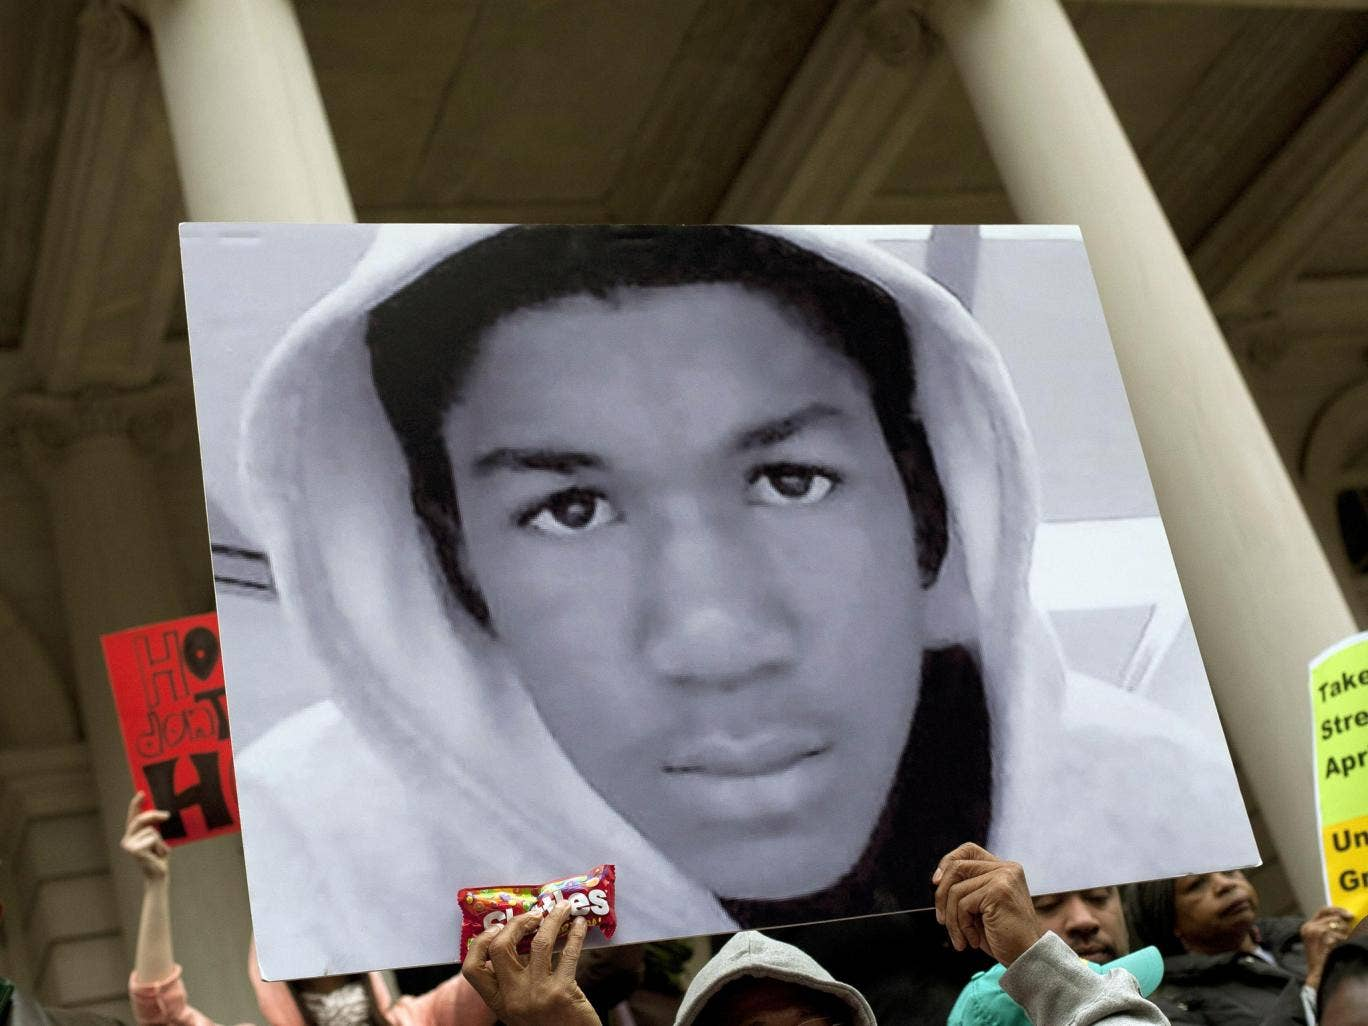 A poster of 17-year-old Trayvon Martin, who was killed in Sanford, Florida in 2012